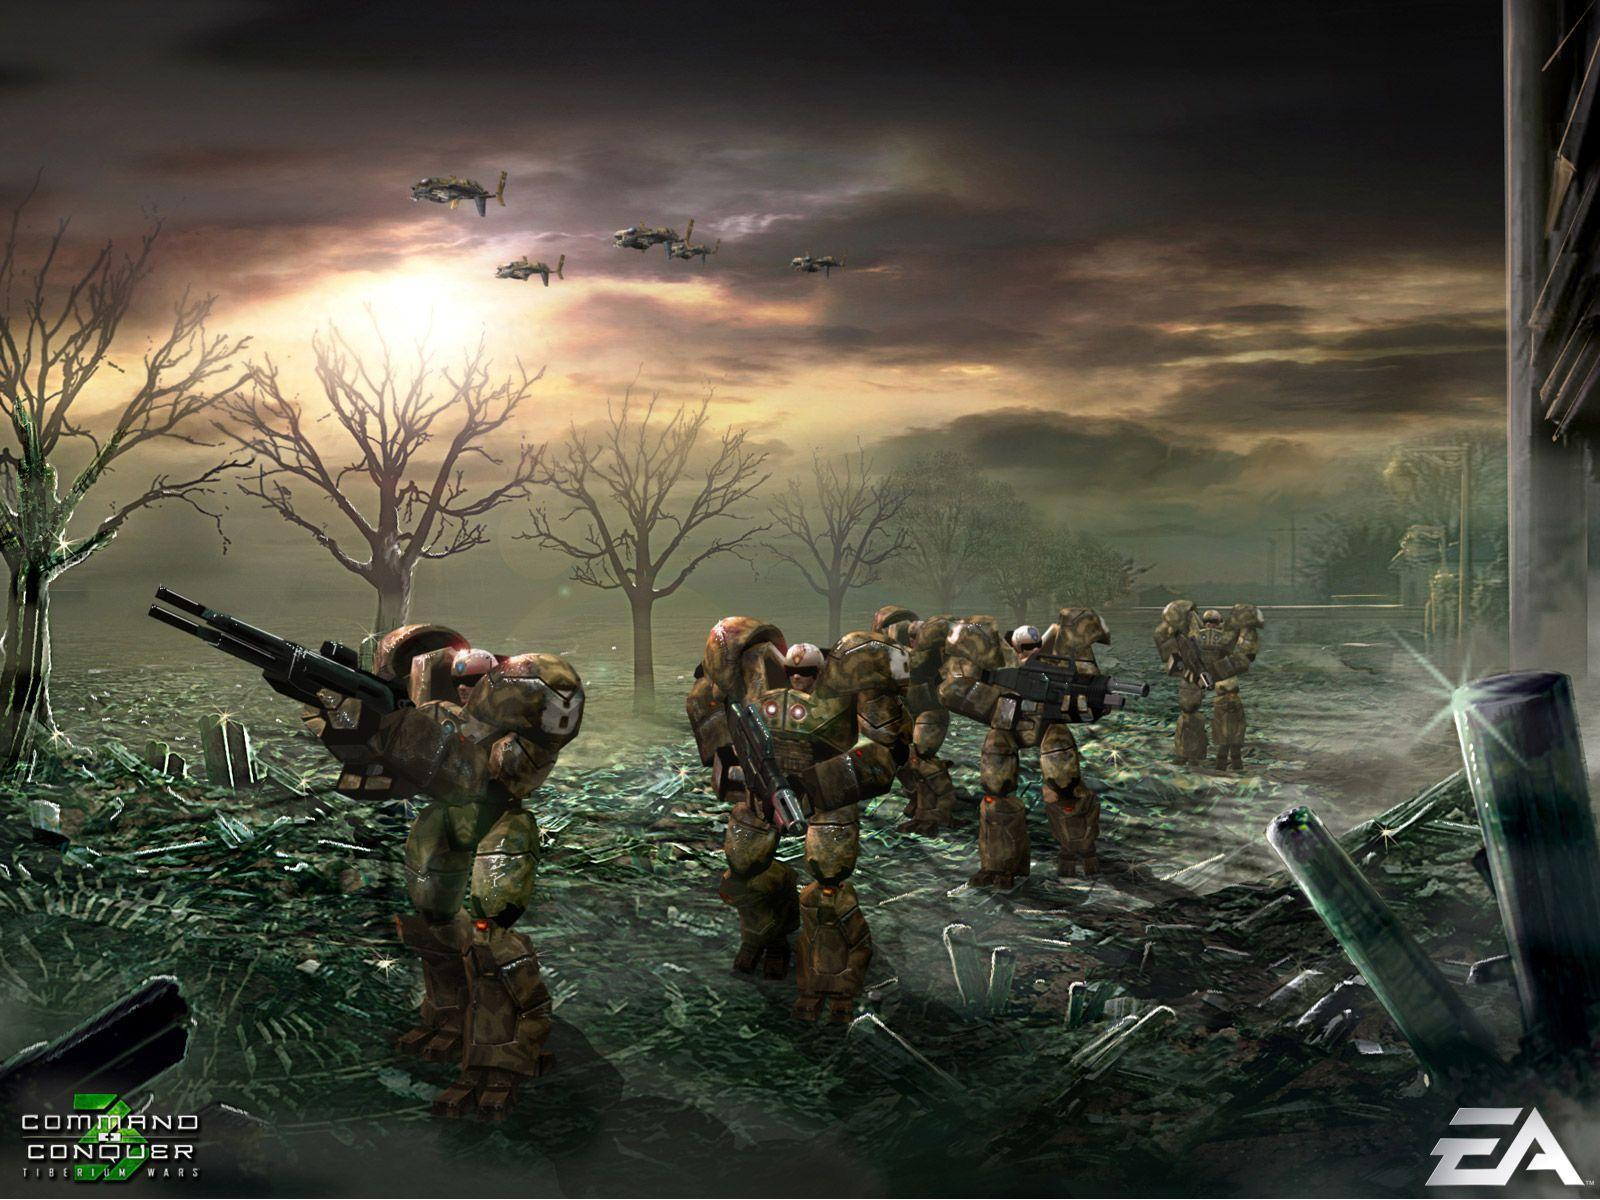 Epic Animal Wallpapers Command And Conquer Wallpapers Wallpaper Cave